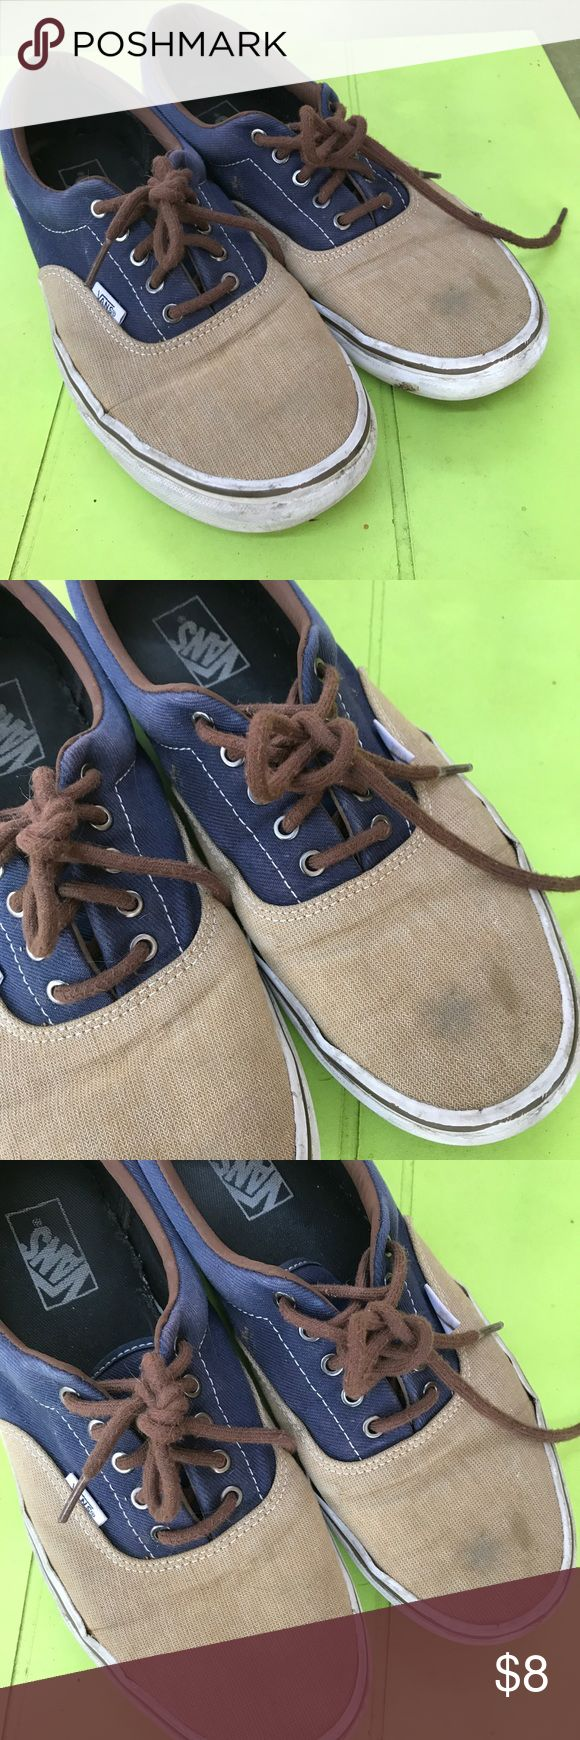 Size 11 1/2 men's vans shoes sneakers Well used size 11 1/2 men's vans still have some life left Vans Shoes Sneakers